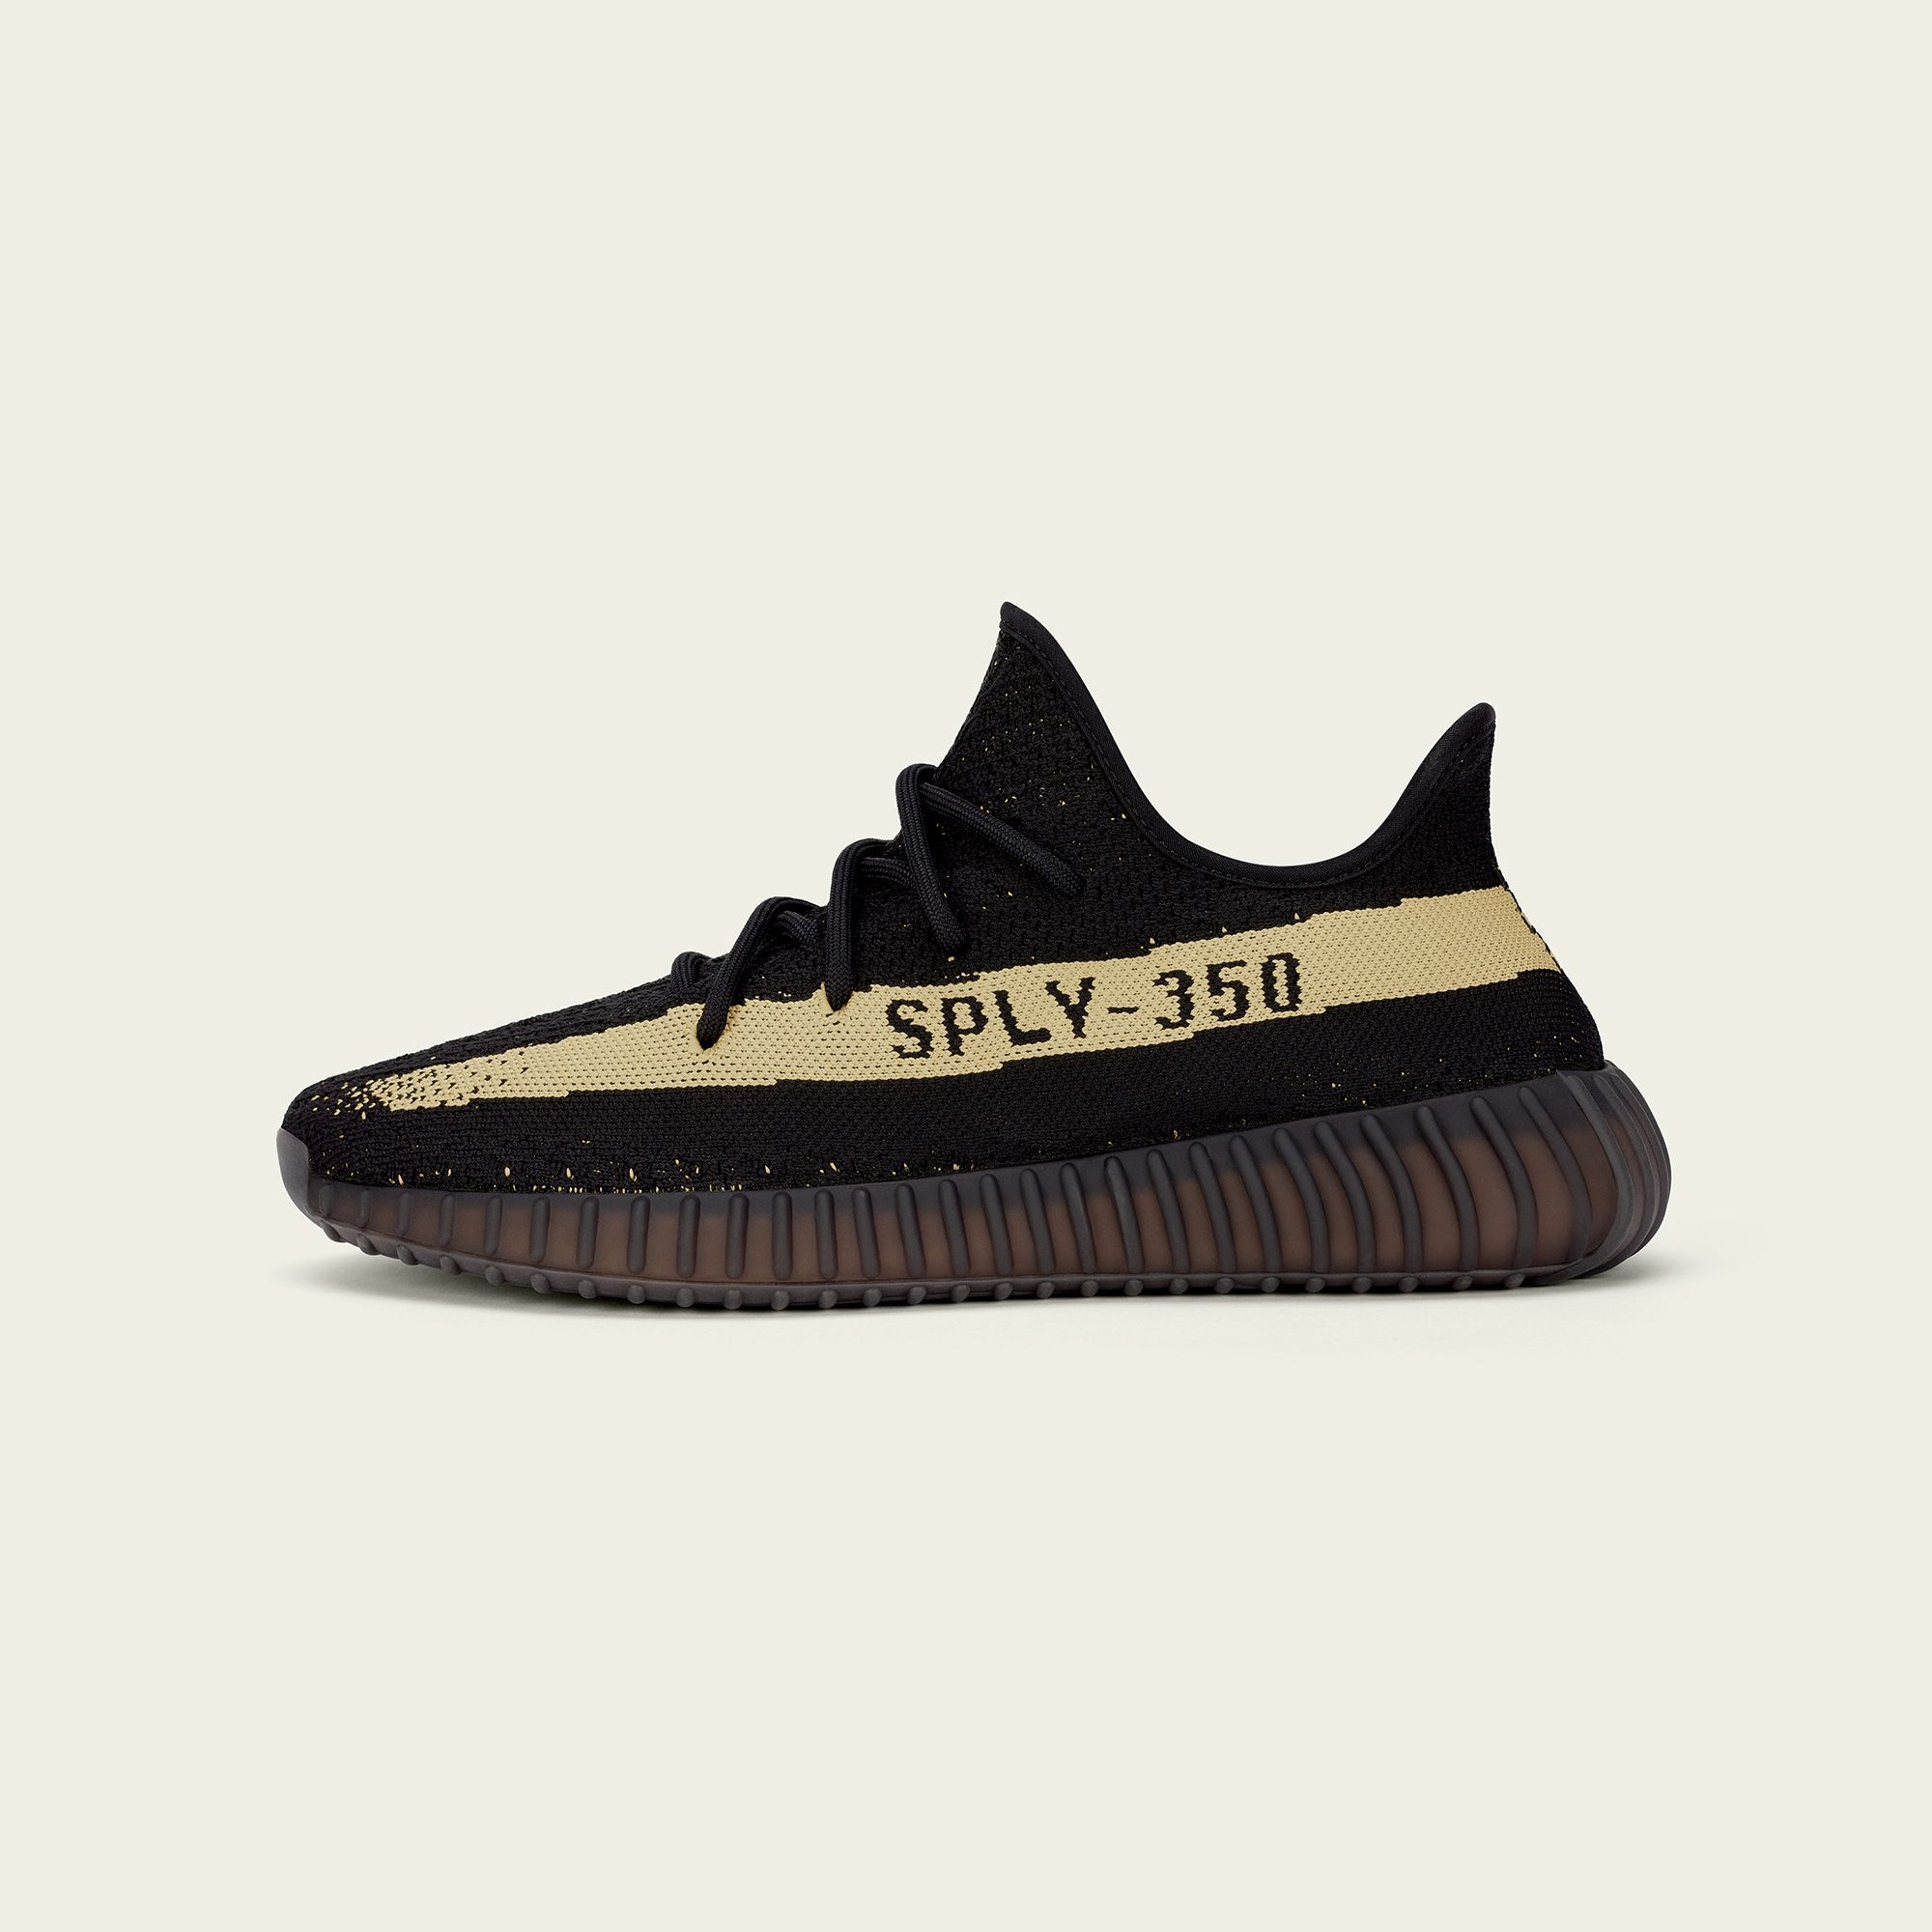 Pies Yeezy Boost 350 V2 Made By Kanye West Adidas Adidas Yeezy Boost Yeezy Adidas Yeezy